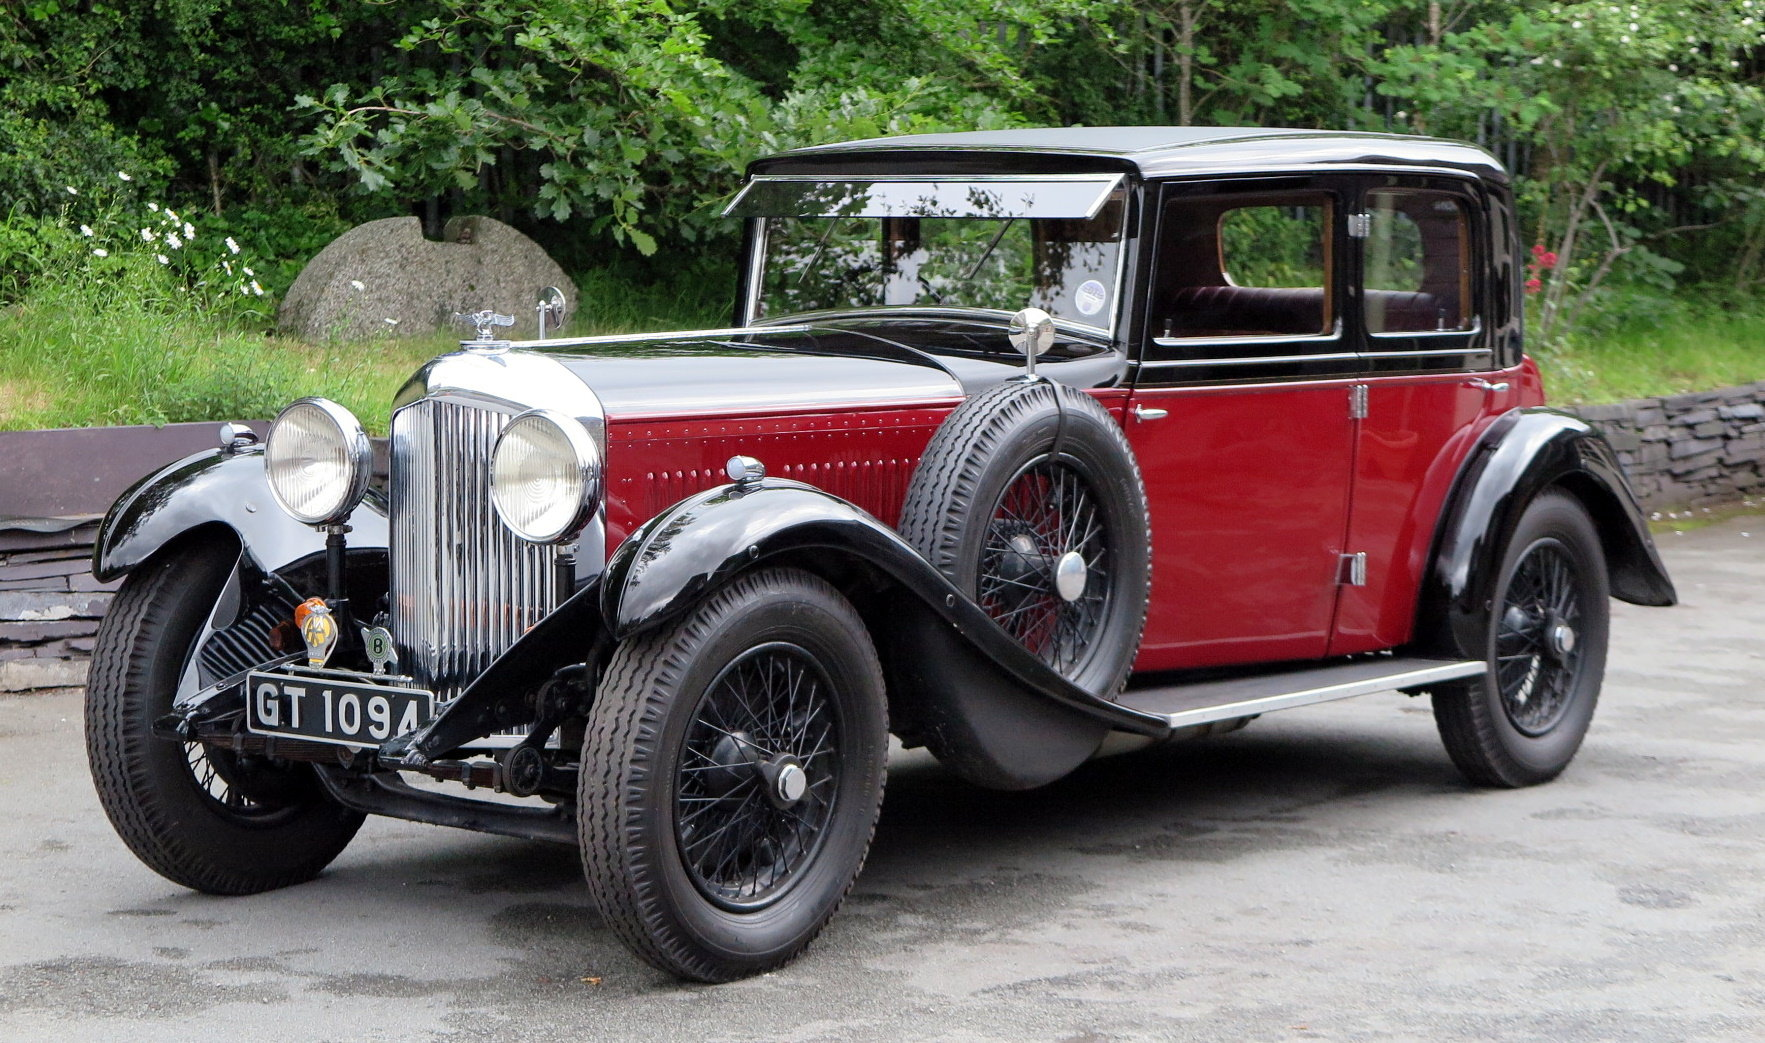 1931 Bentley 4ltr Gurney Nutting Saloon VF4011 For Sale (picture 1 of 6)